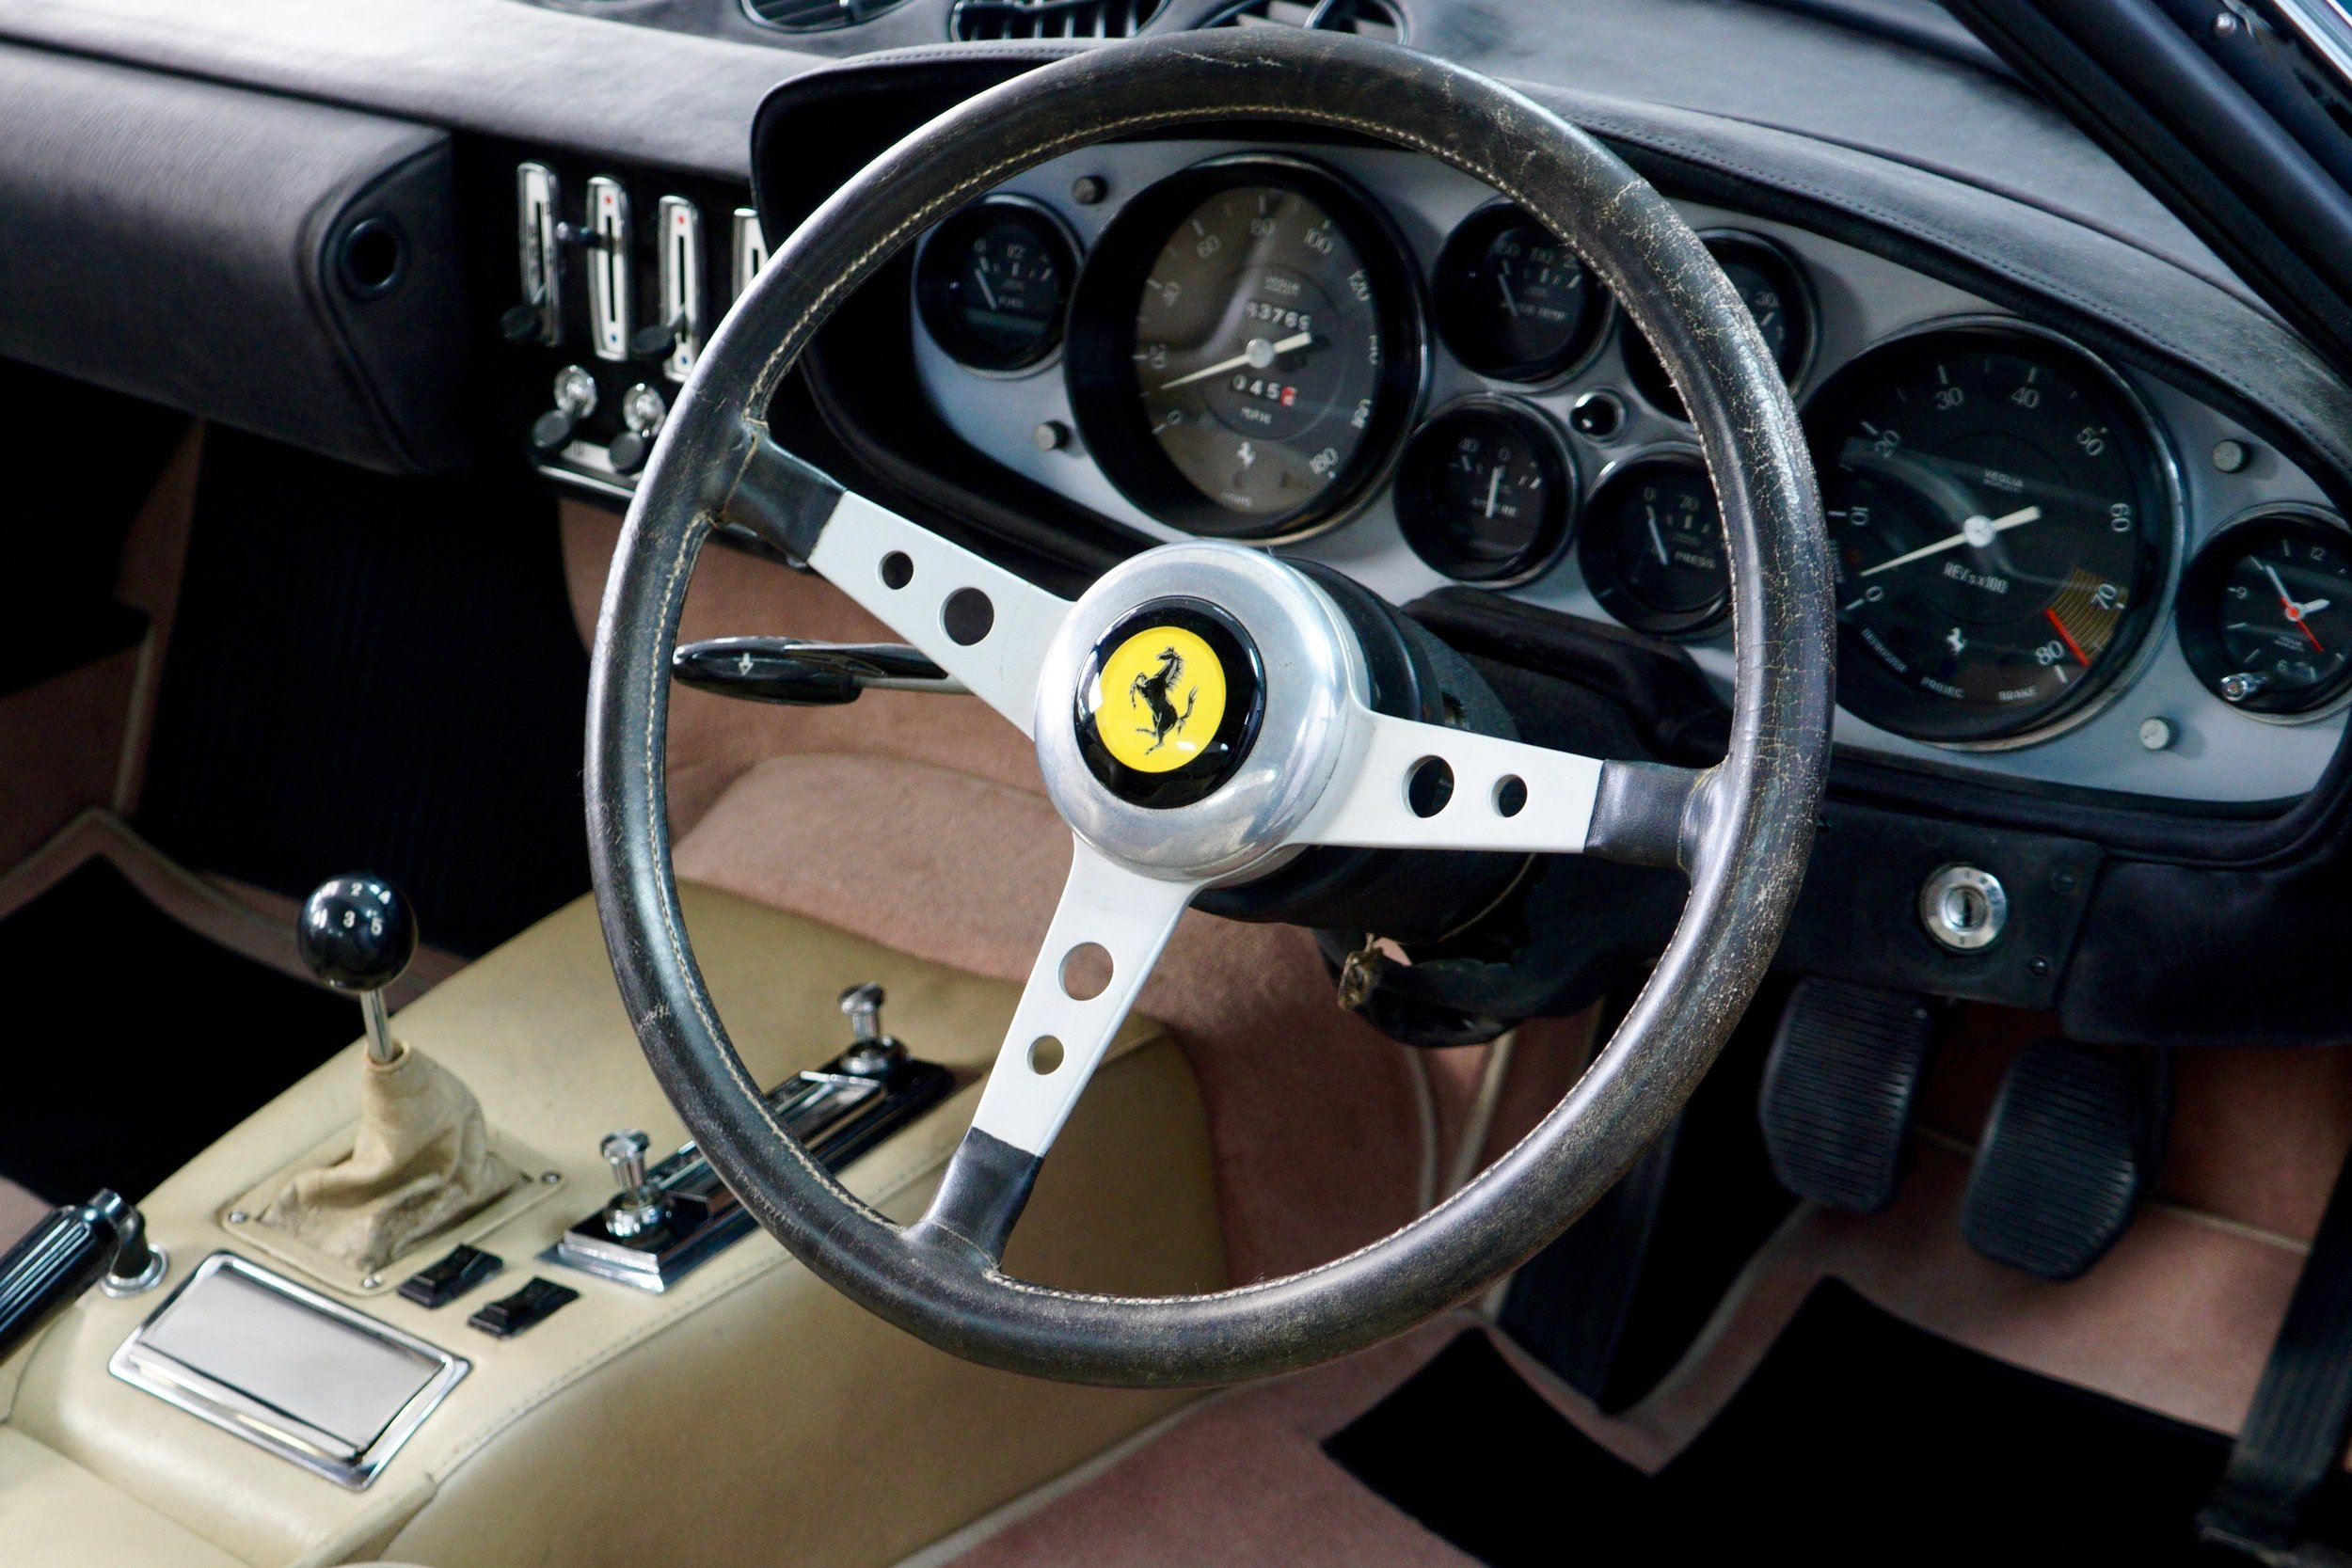 The finished steering wheel re-fitted to the car.